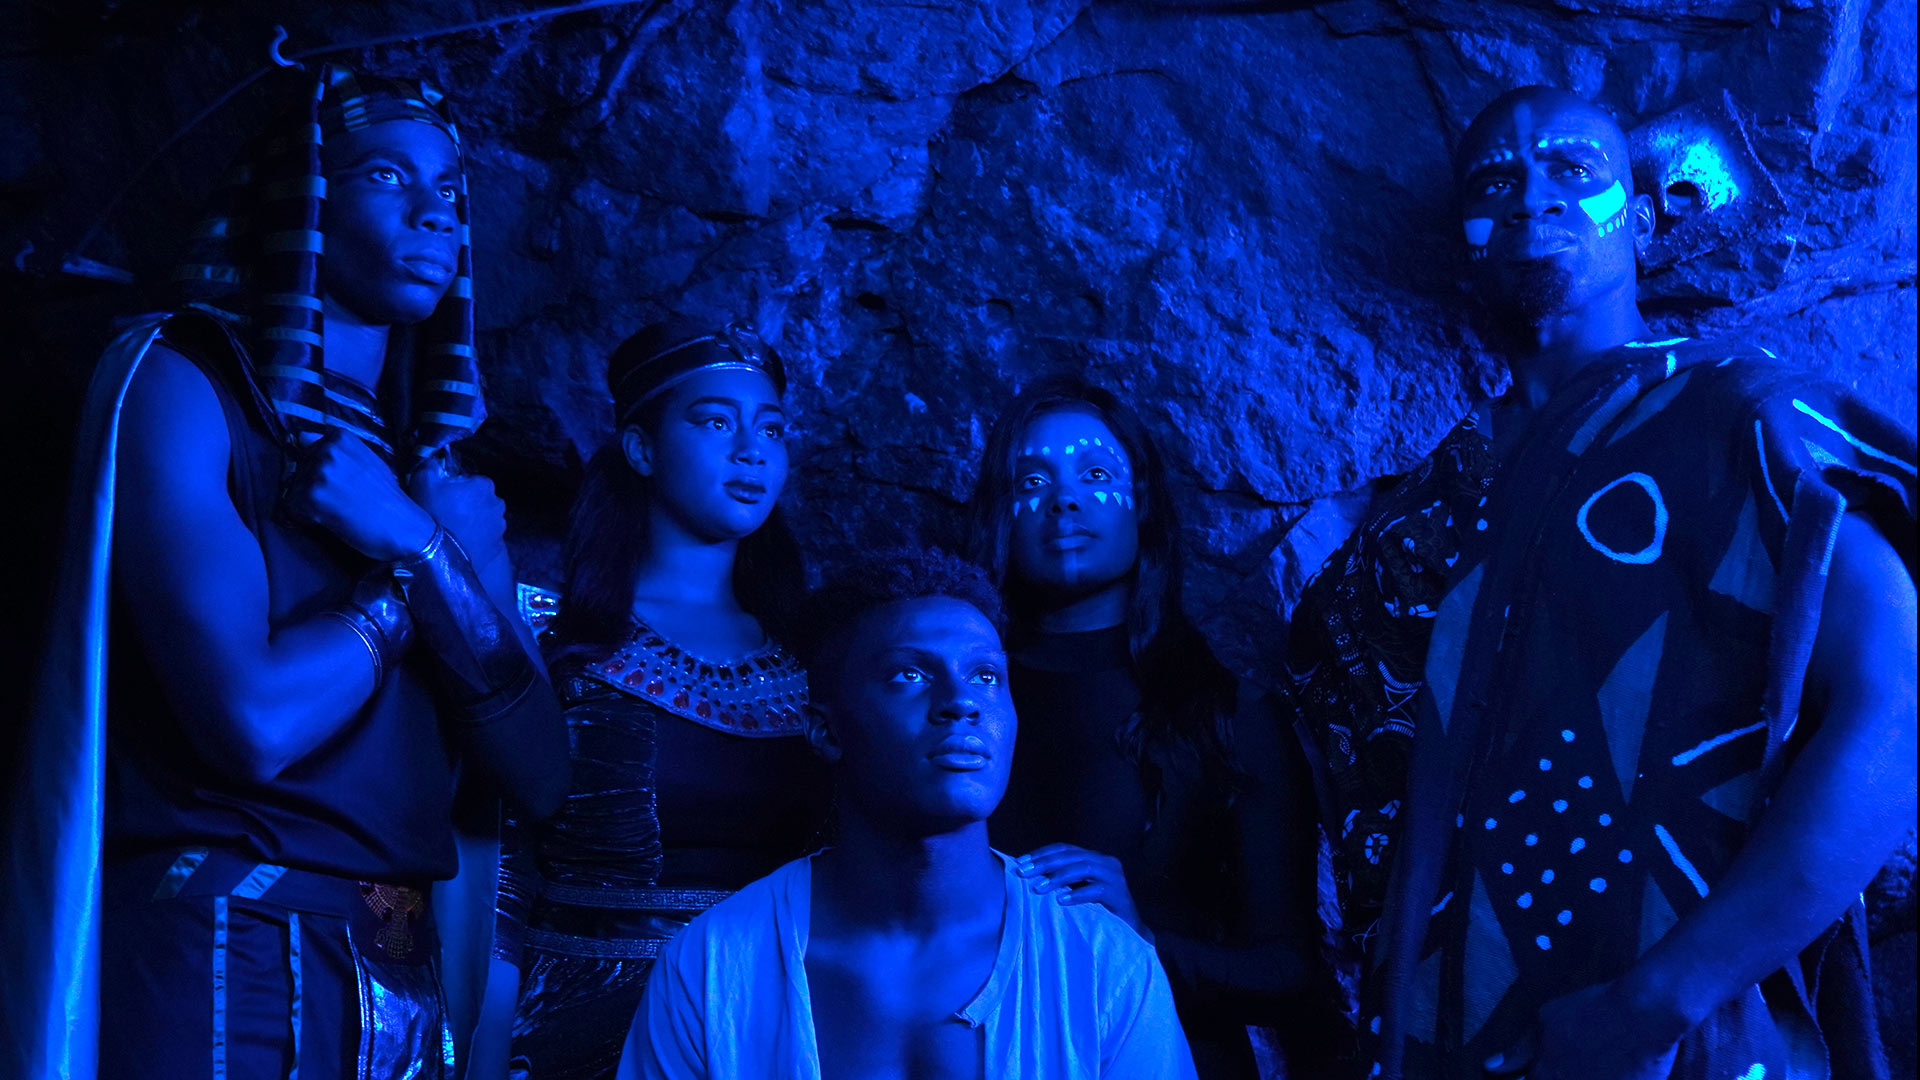 The Blue Cave Film Still